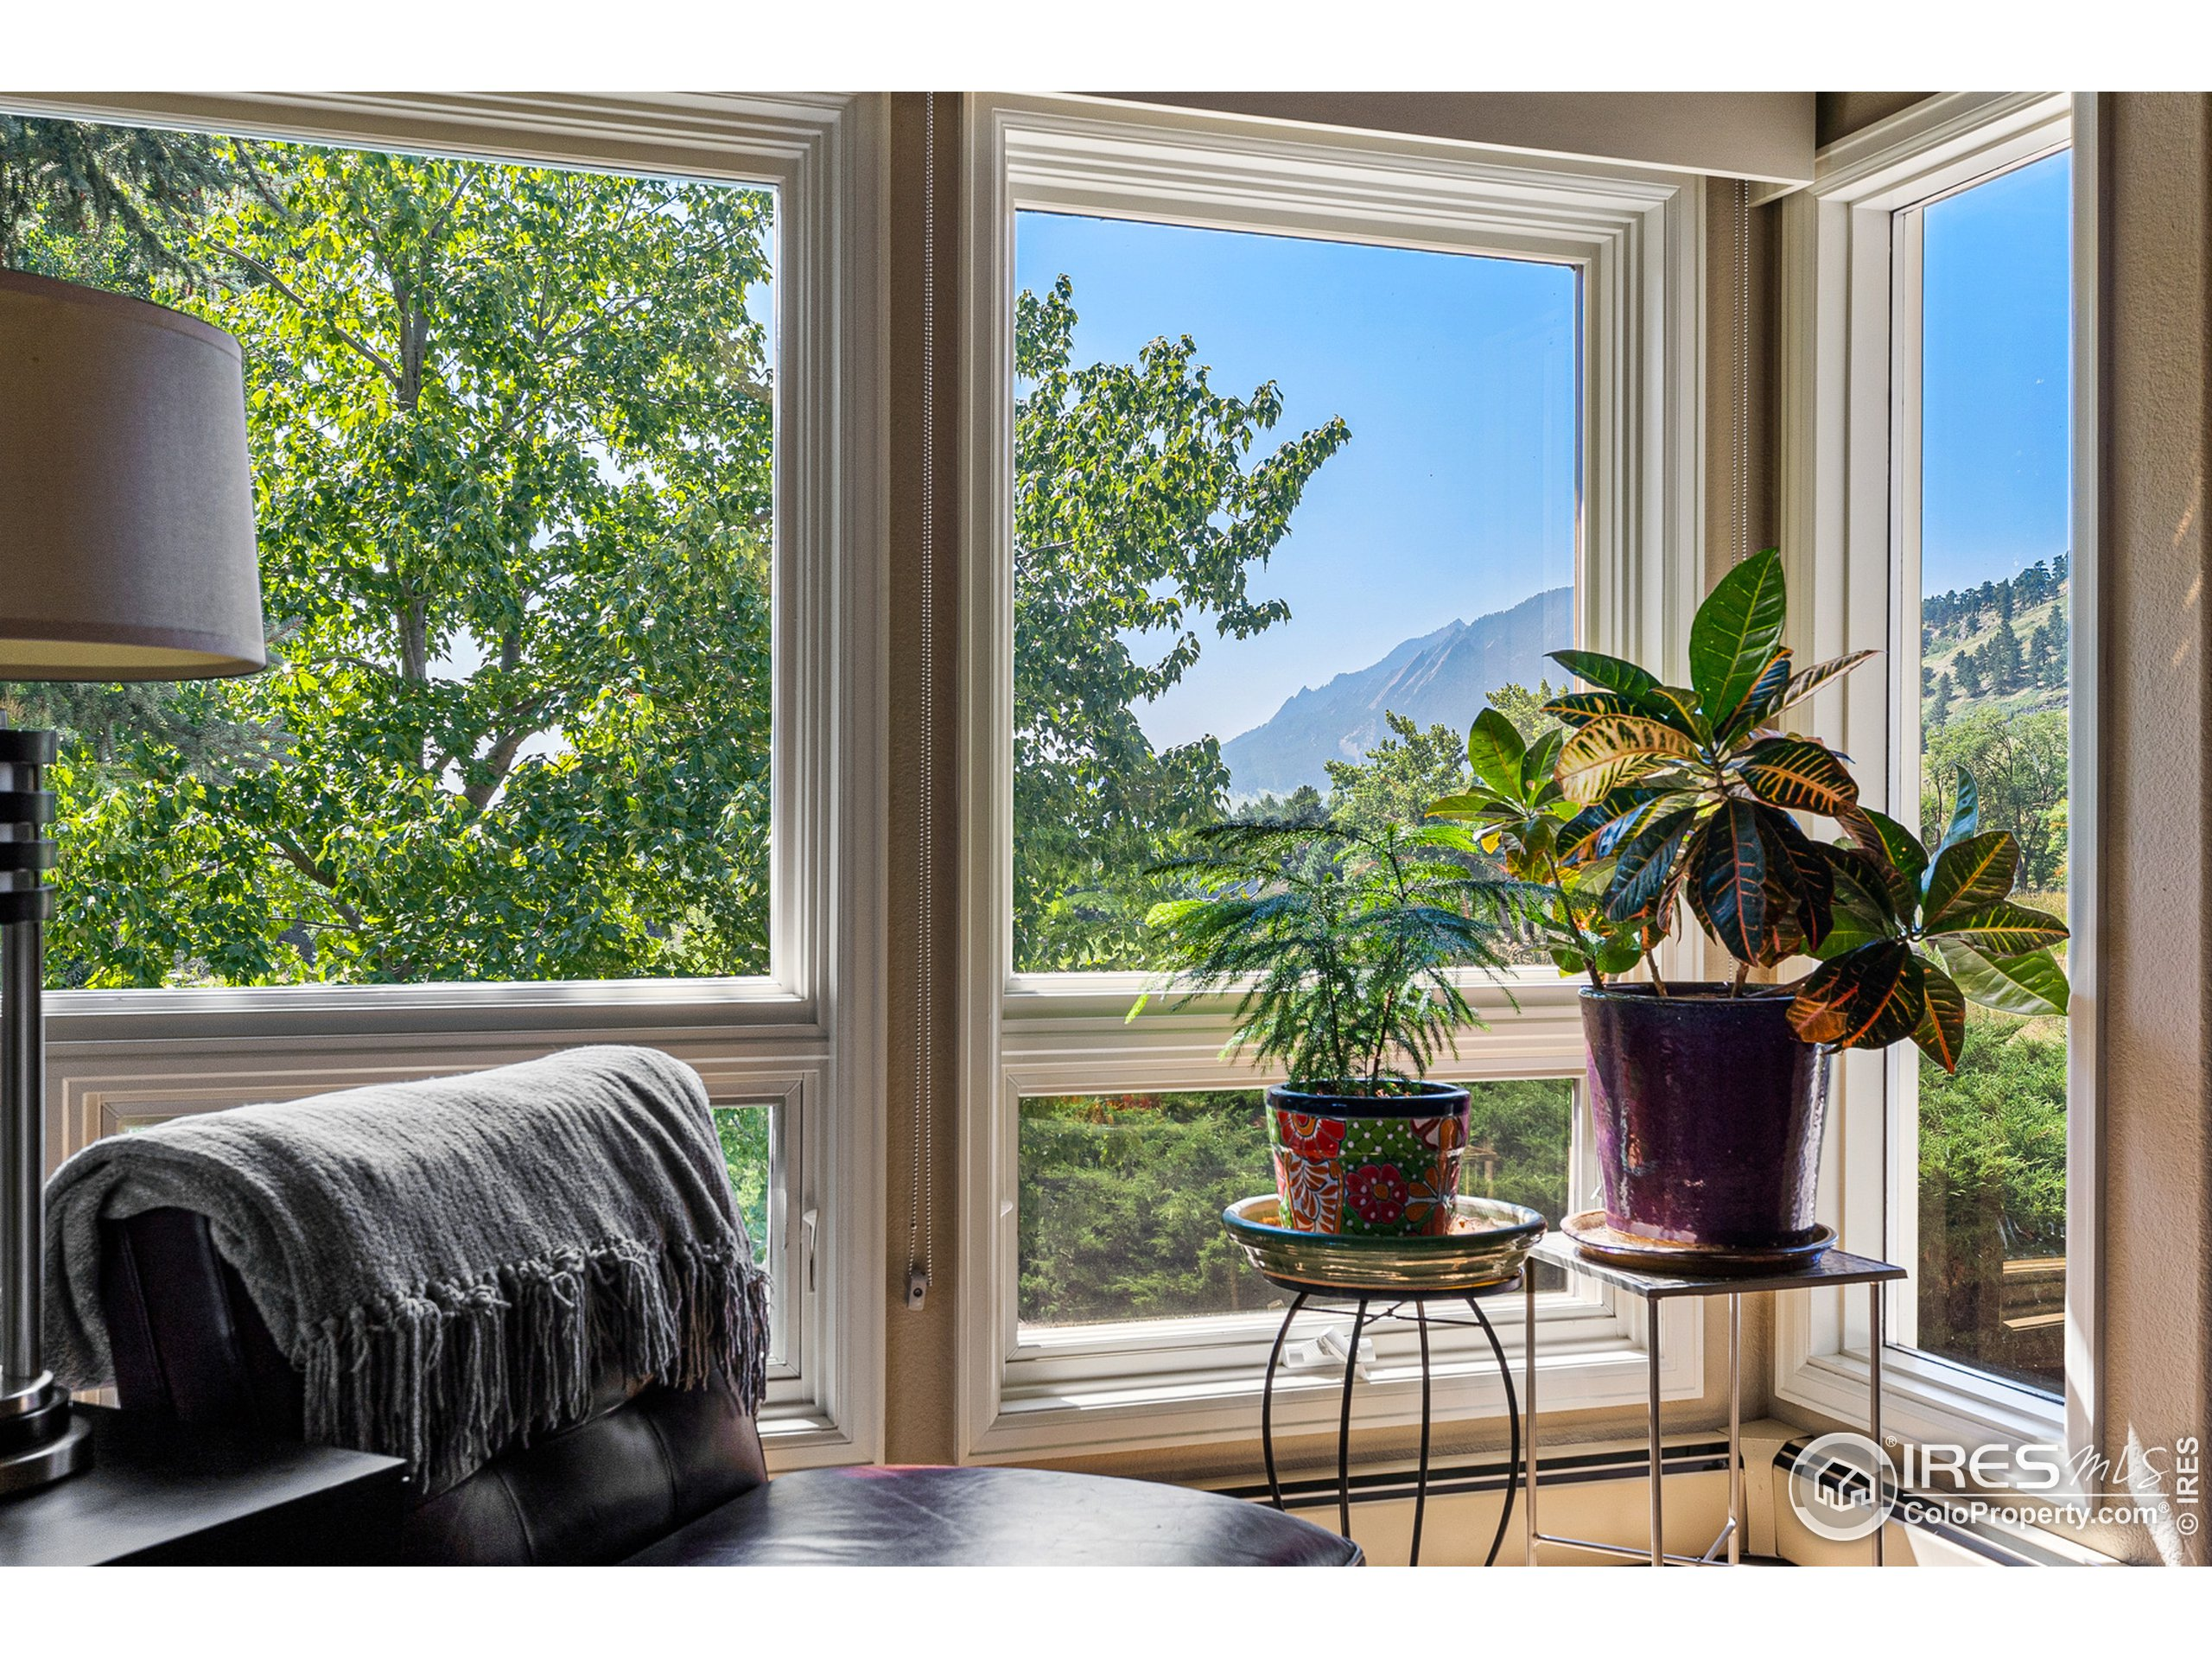 Mountain views from the living room windows